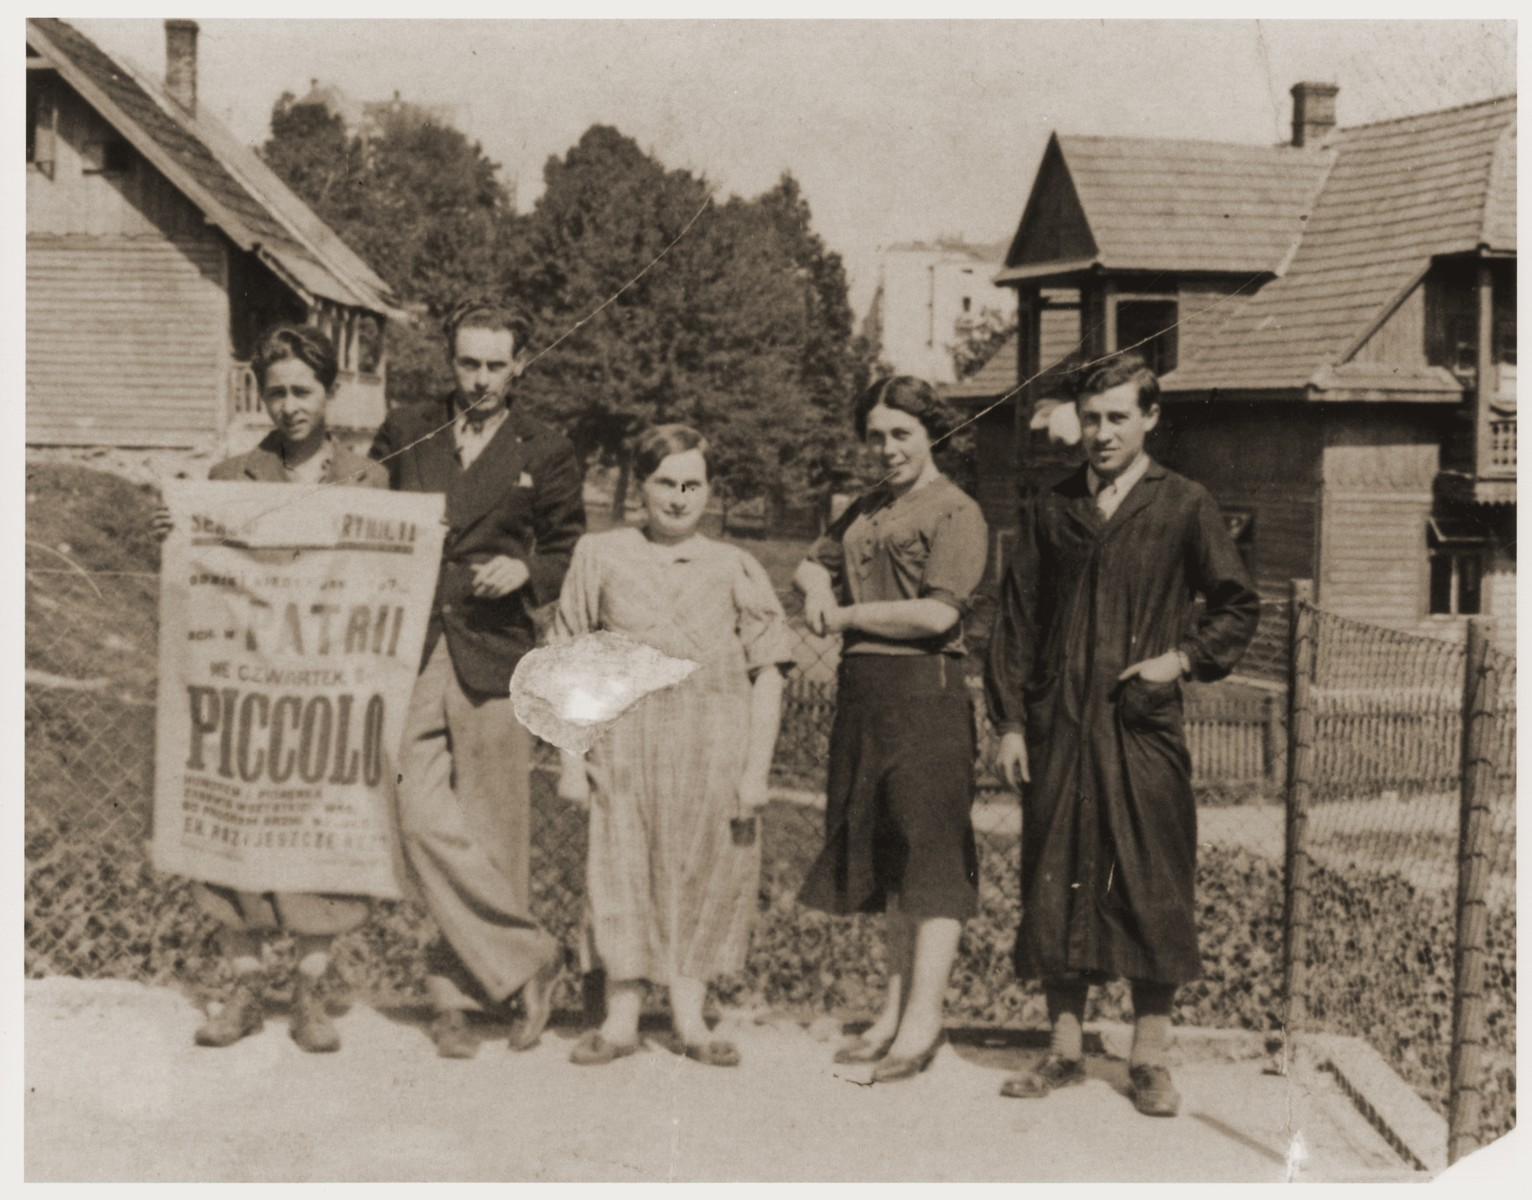 Berl Moncznik (right) poses outside with members of the Checkinski family, who owned the print shop in Krynica where he worked.    The poster they hold was printed in their shop.